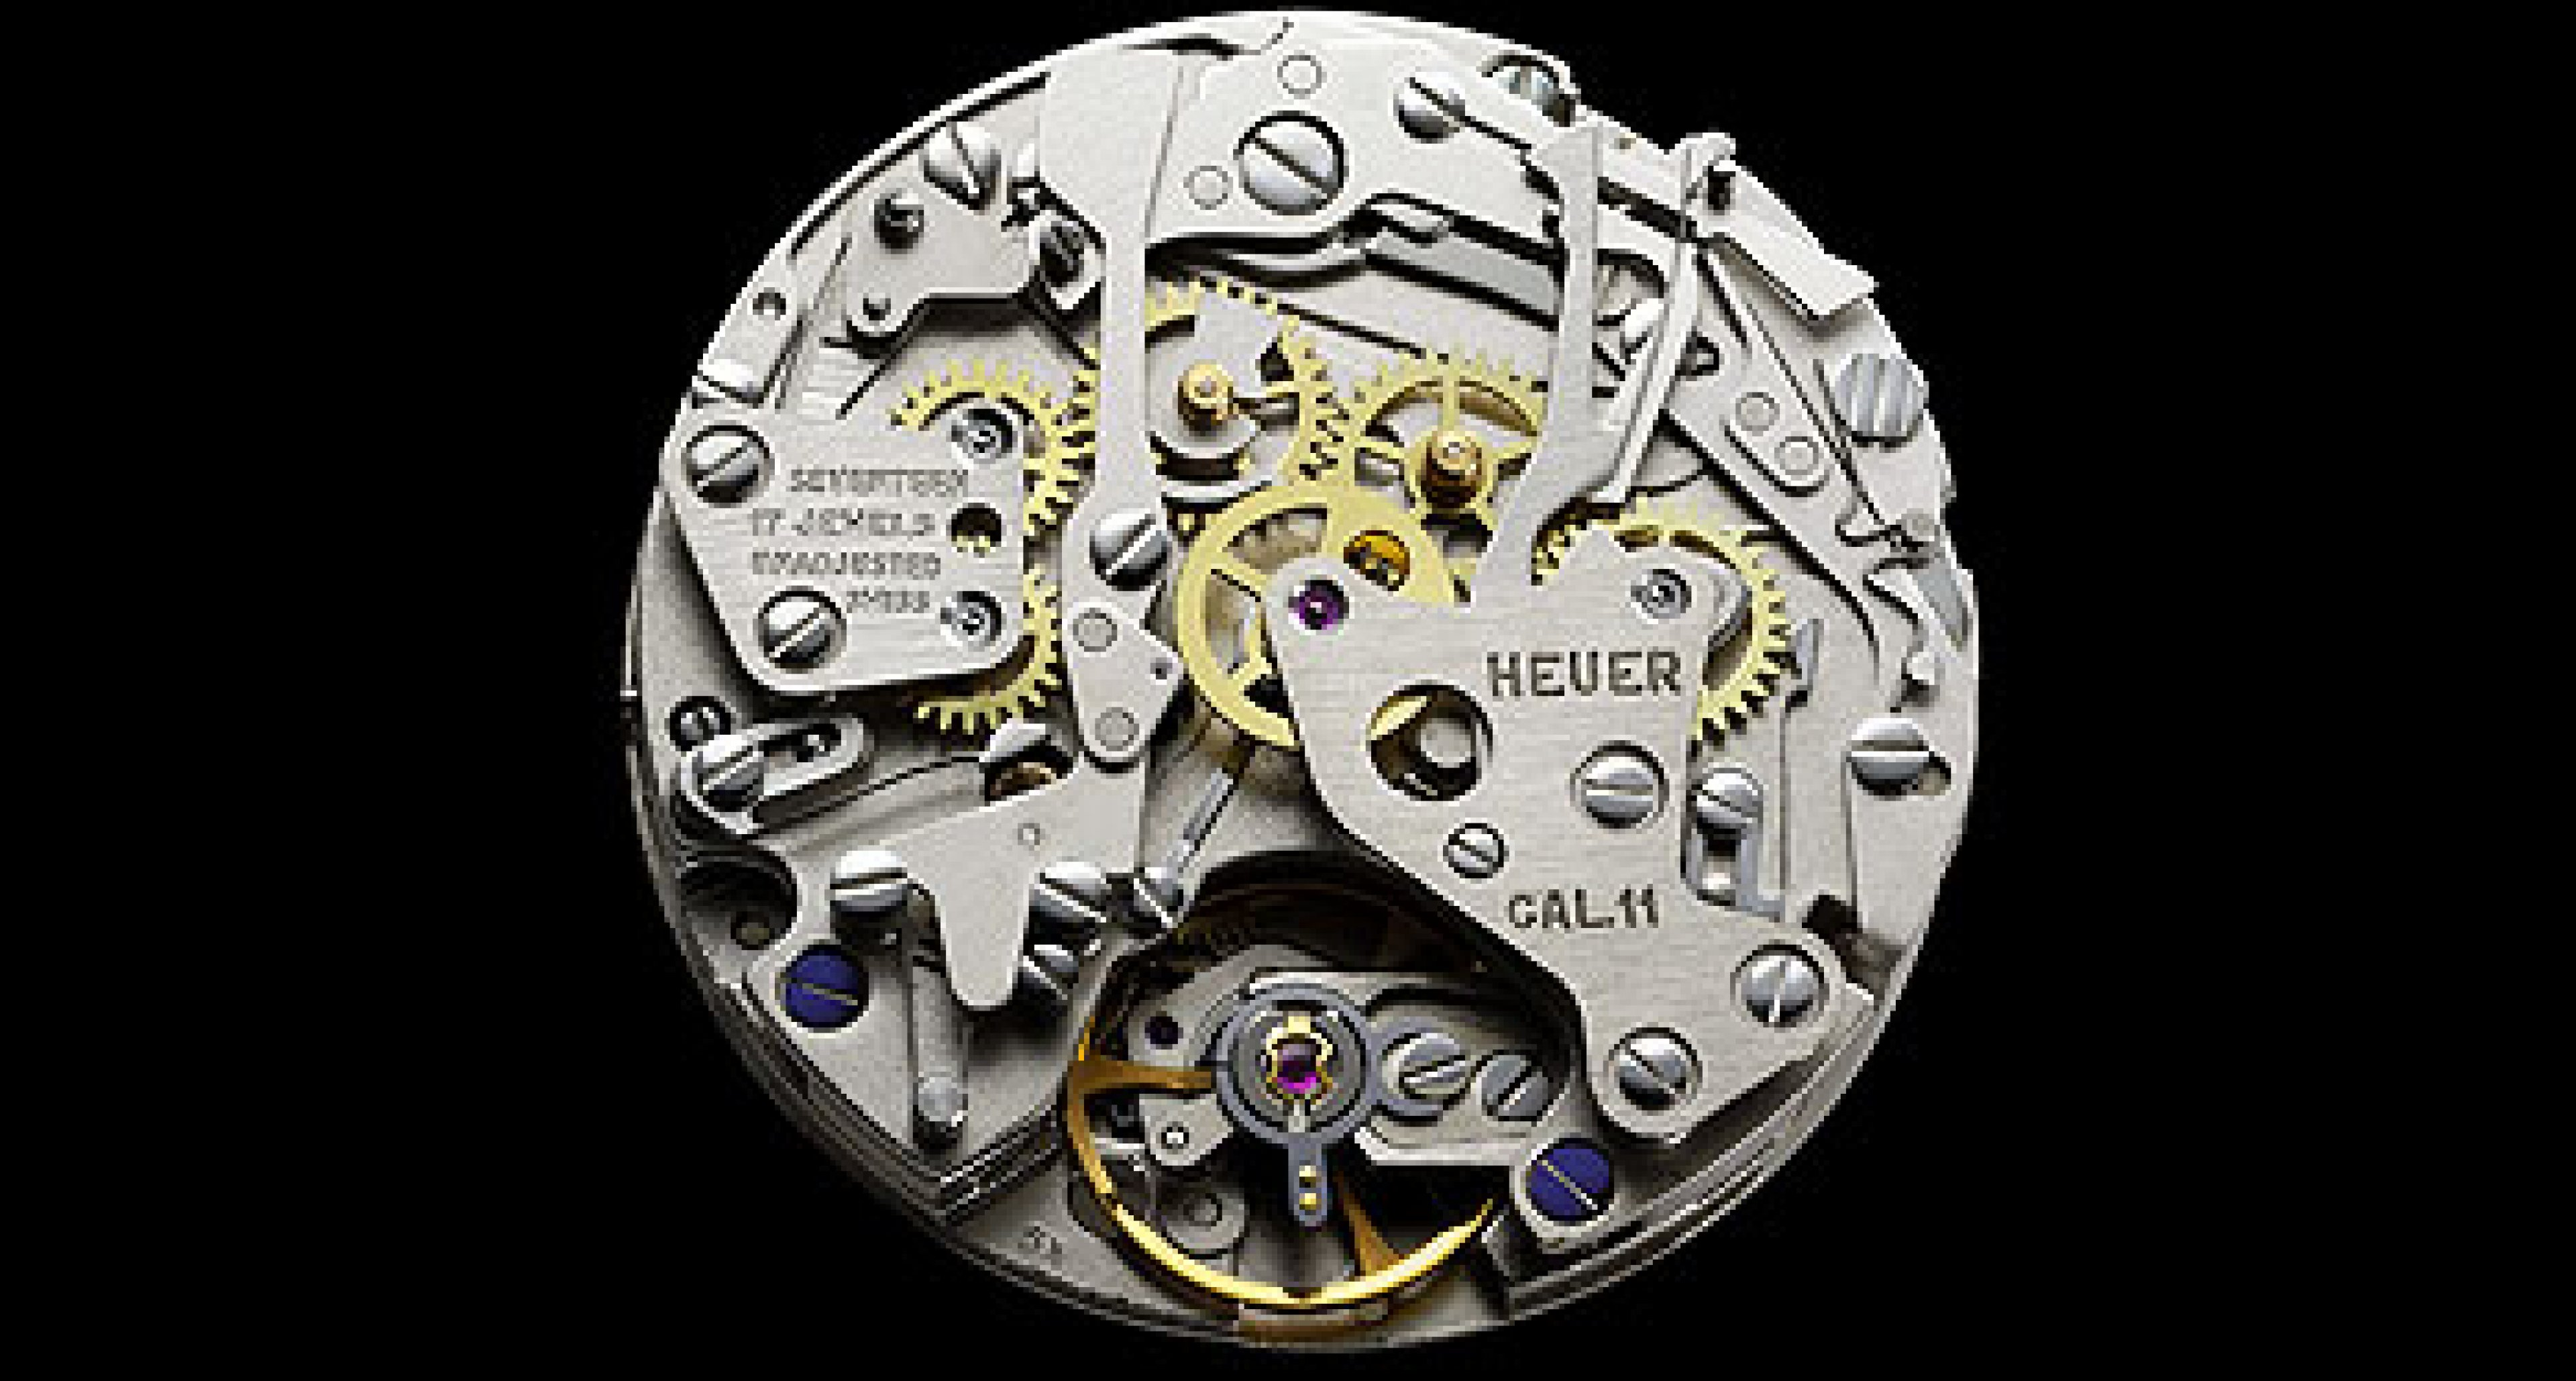 The first ever 1/100th of a second mechanical wrist chronograph